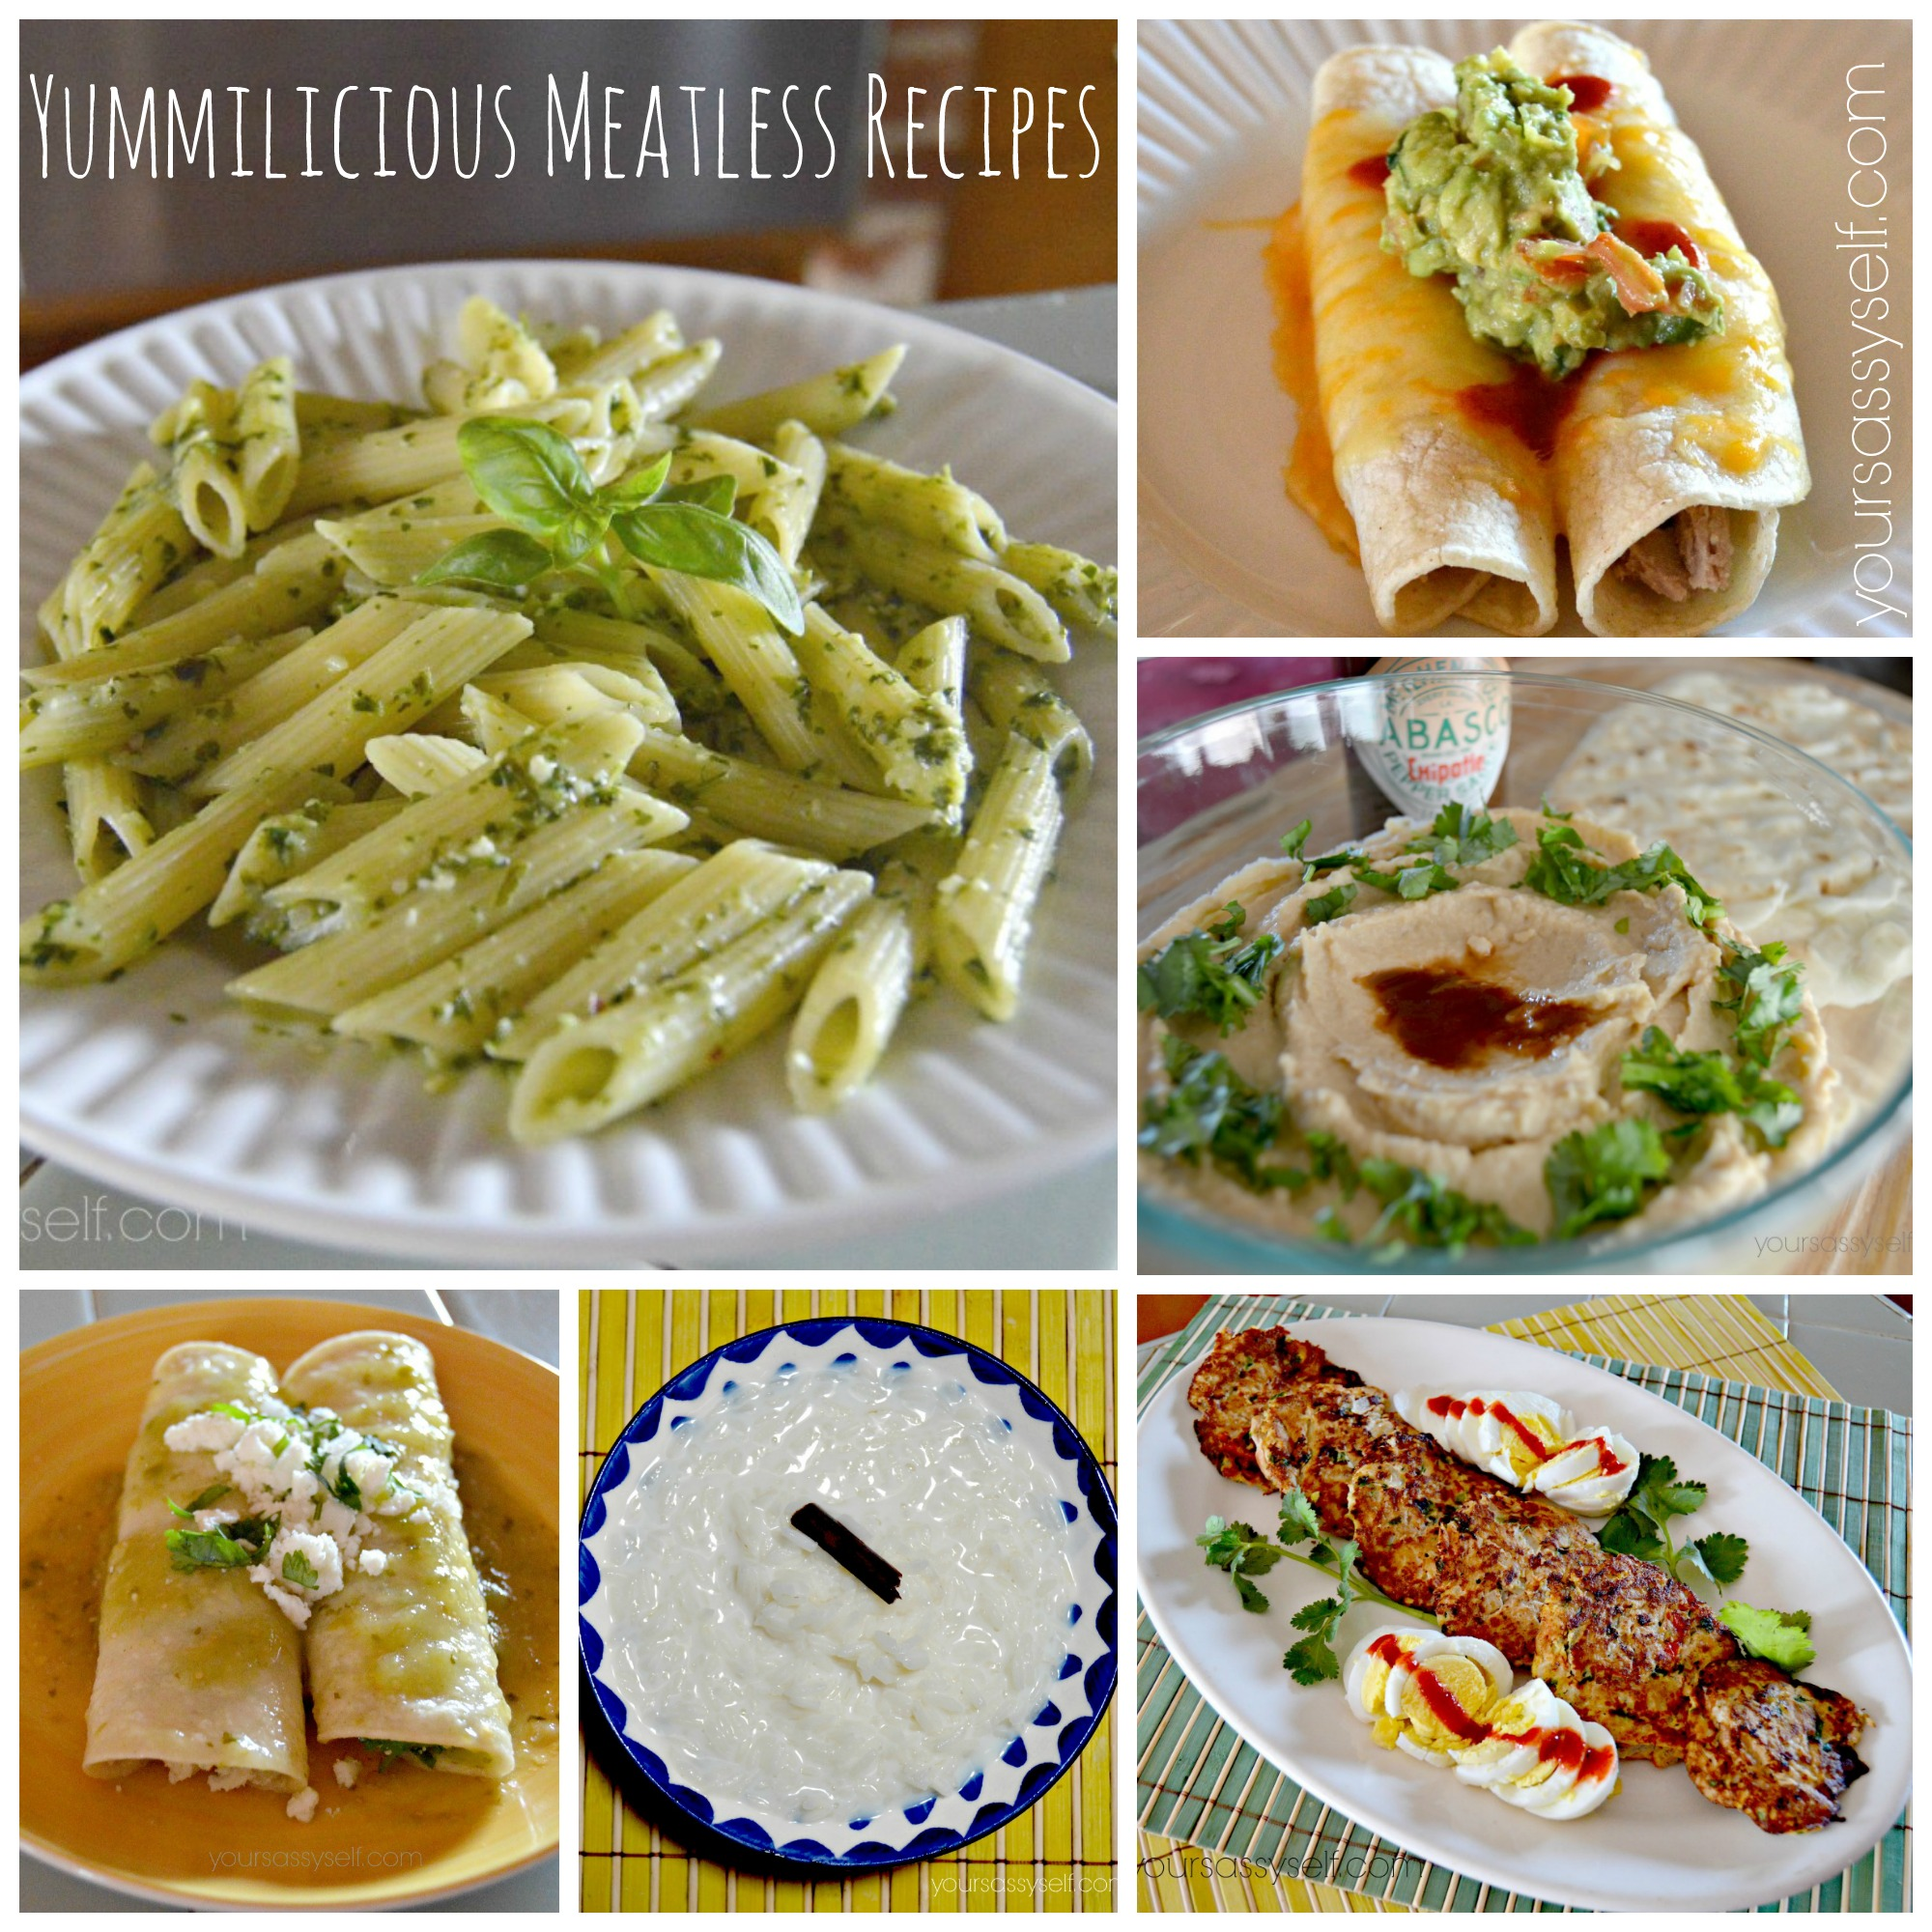 Mi Cocina Latina Com Recipes Yummilicious Meatless Recipes Your Sassy Self